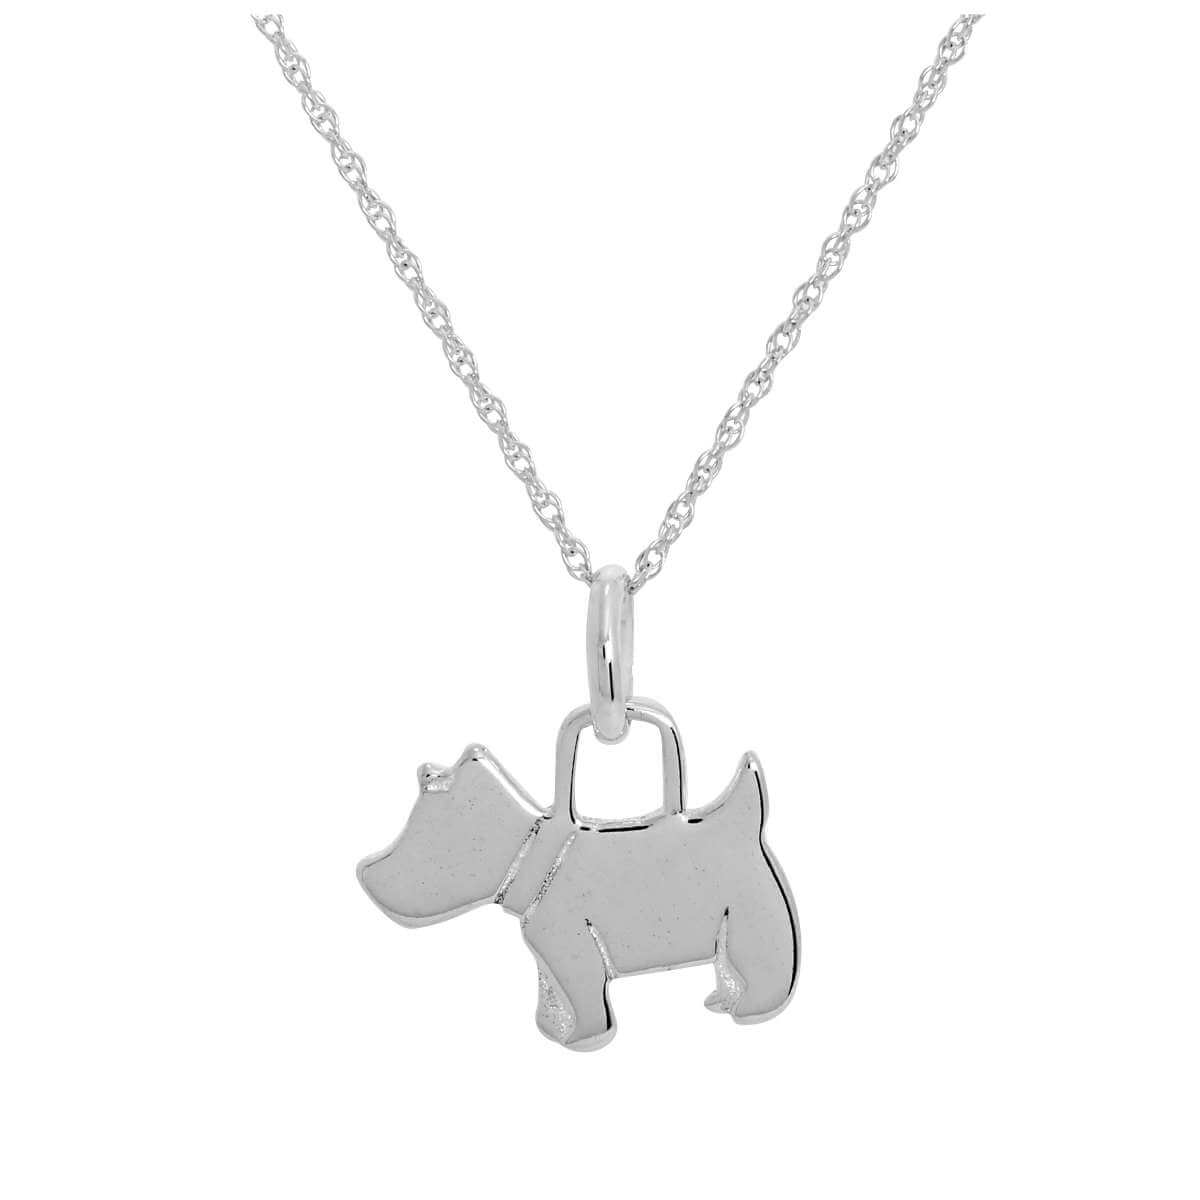 Sterling Silver Scottie Dog Pendant Necklace 14 - 22 Inches